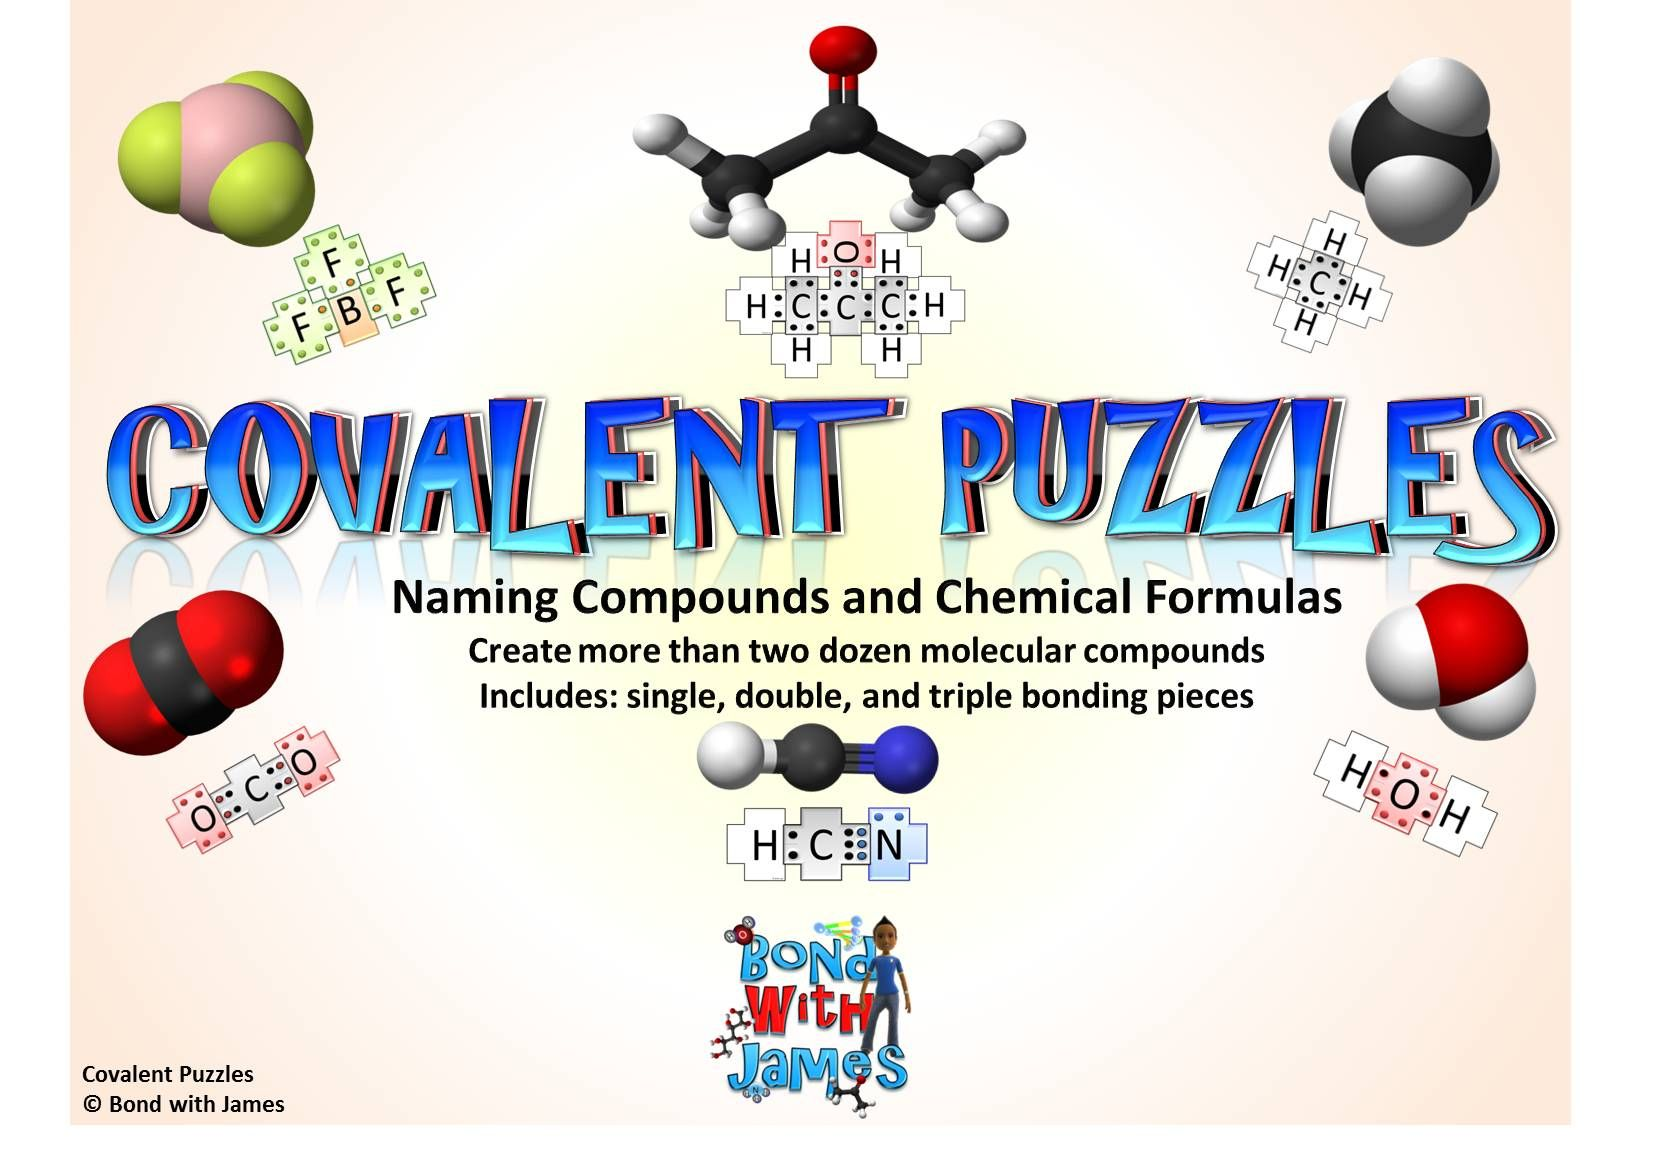 Over 2 Dozen Molecular Compounds Can Be Built With The